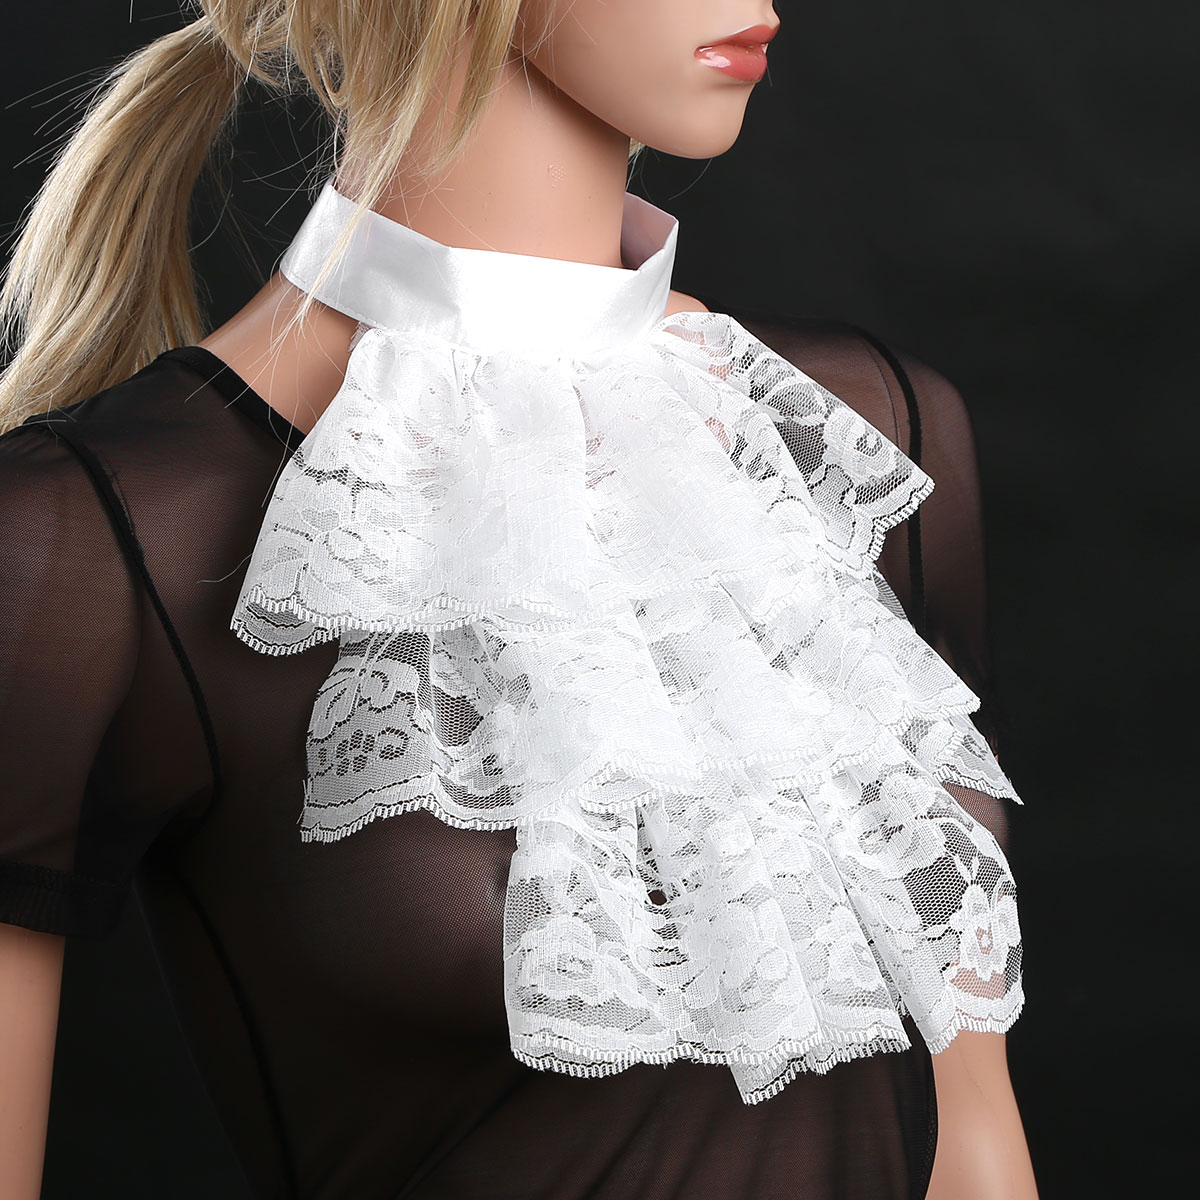 Fake Collar Victorian Renaissance Detachable Collar Ruffled Lace Jabot Neck Collar Stage Party Fancy Steampunk Costume Accessory